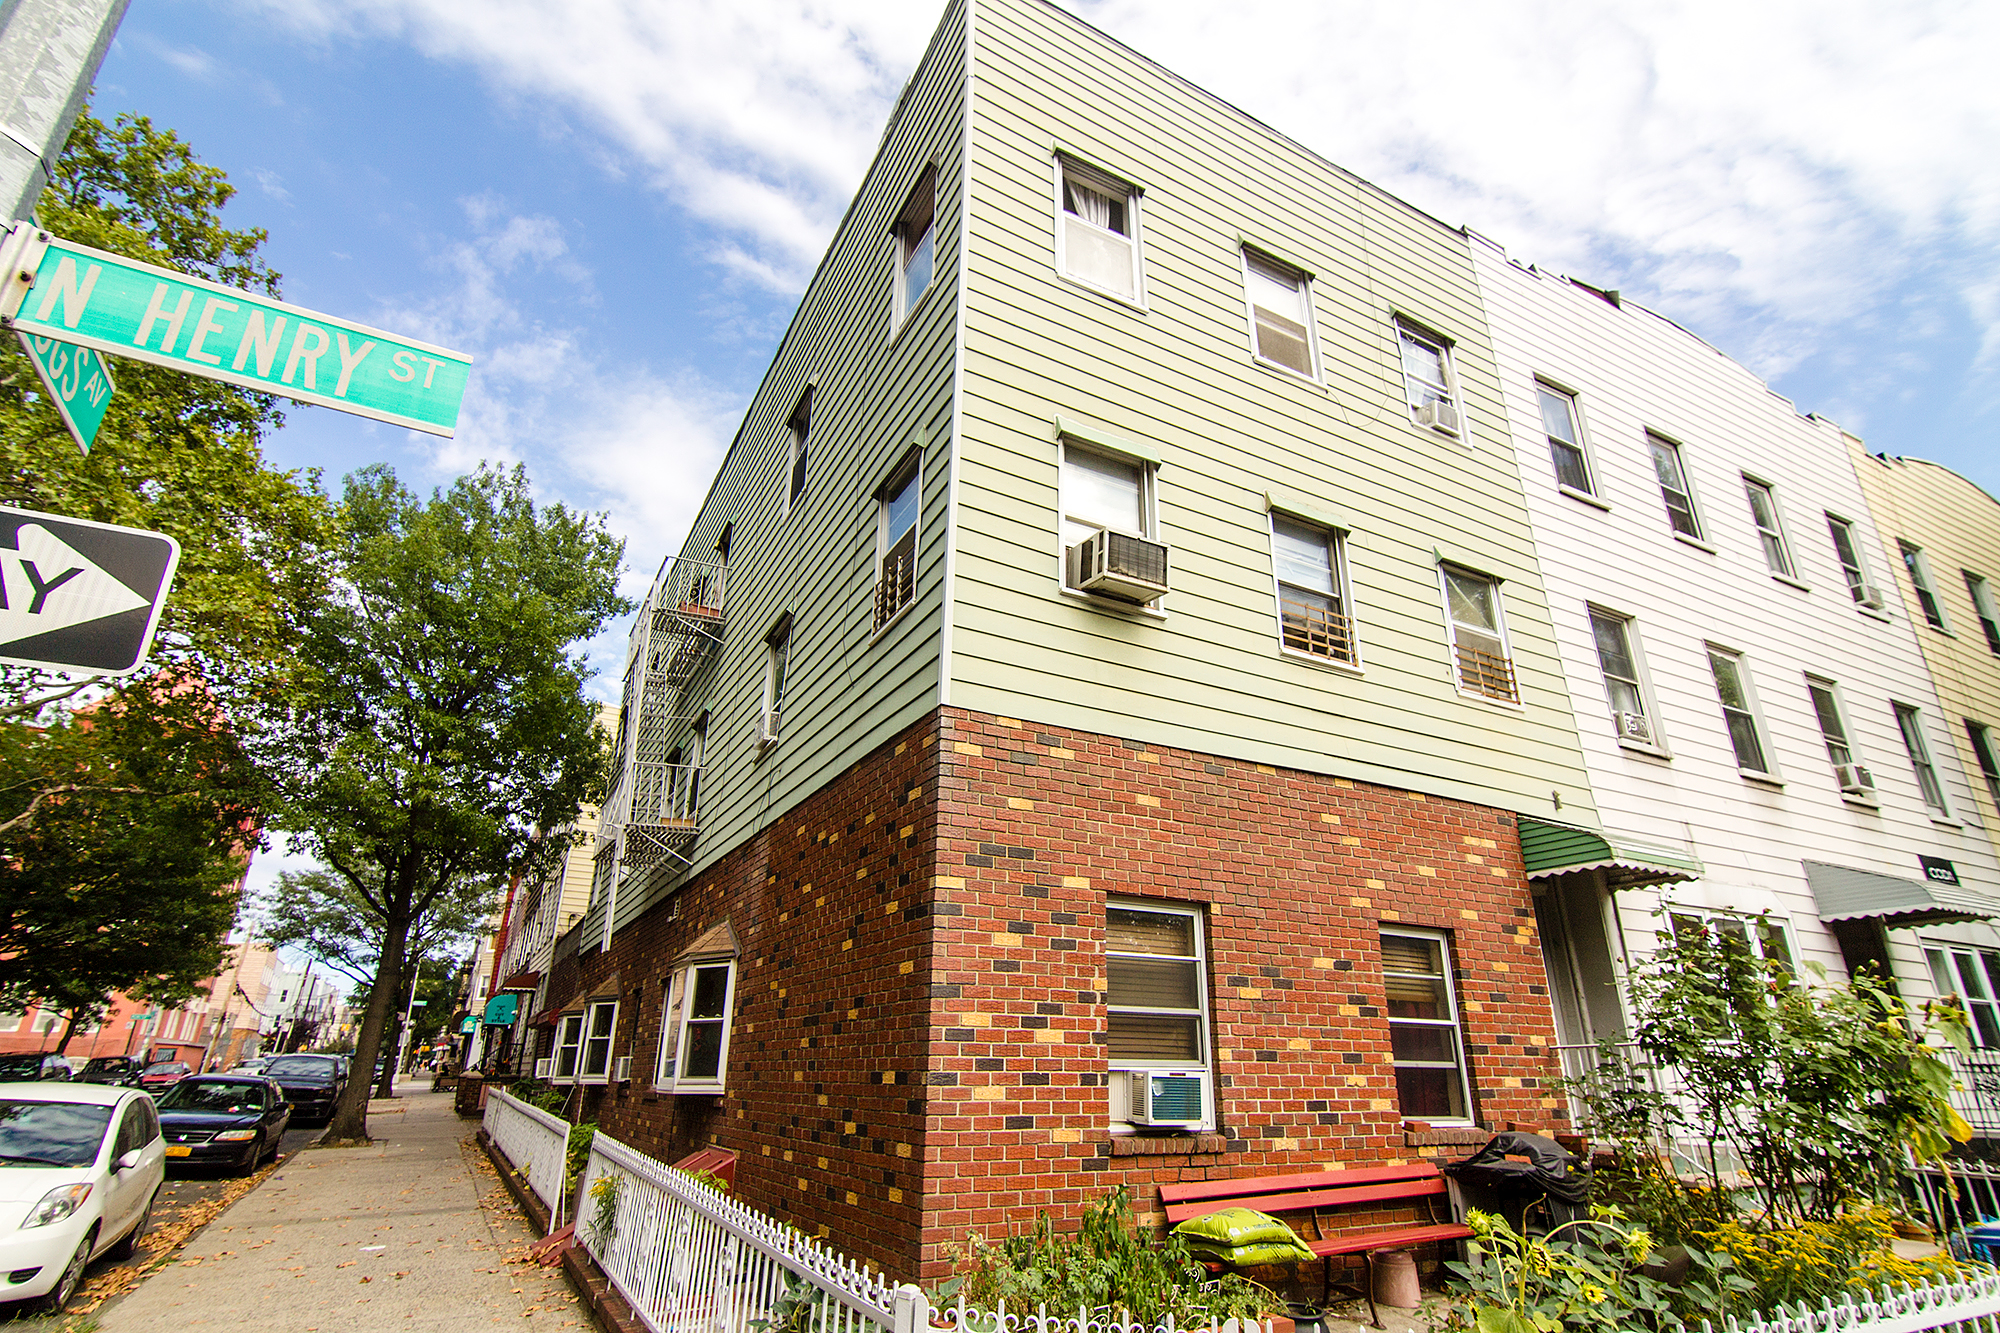 Off Market| Greenpoint | 5 Fam | 3,800,000